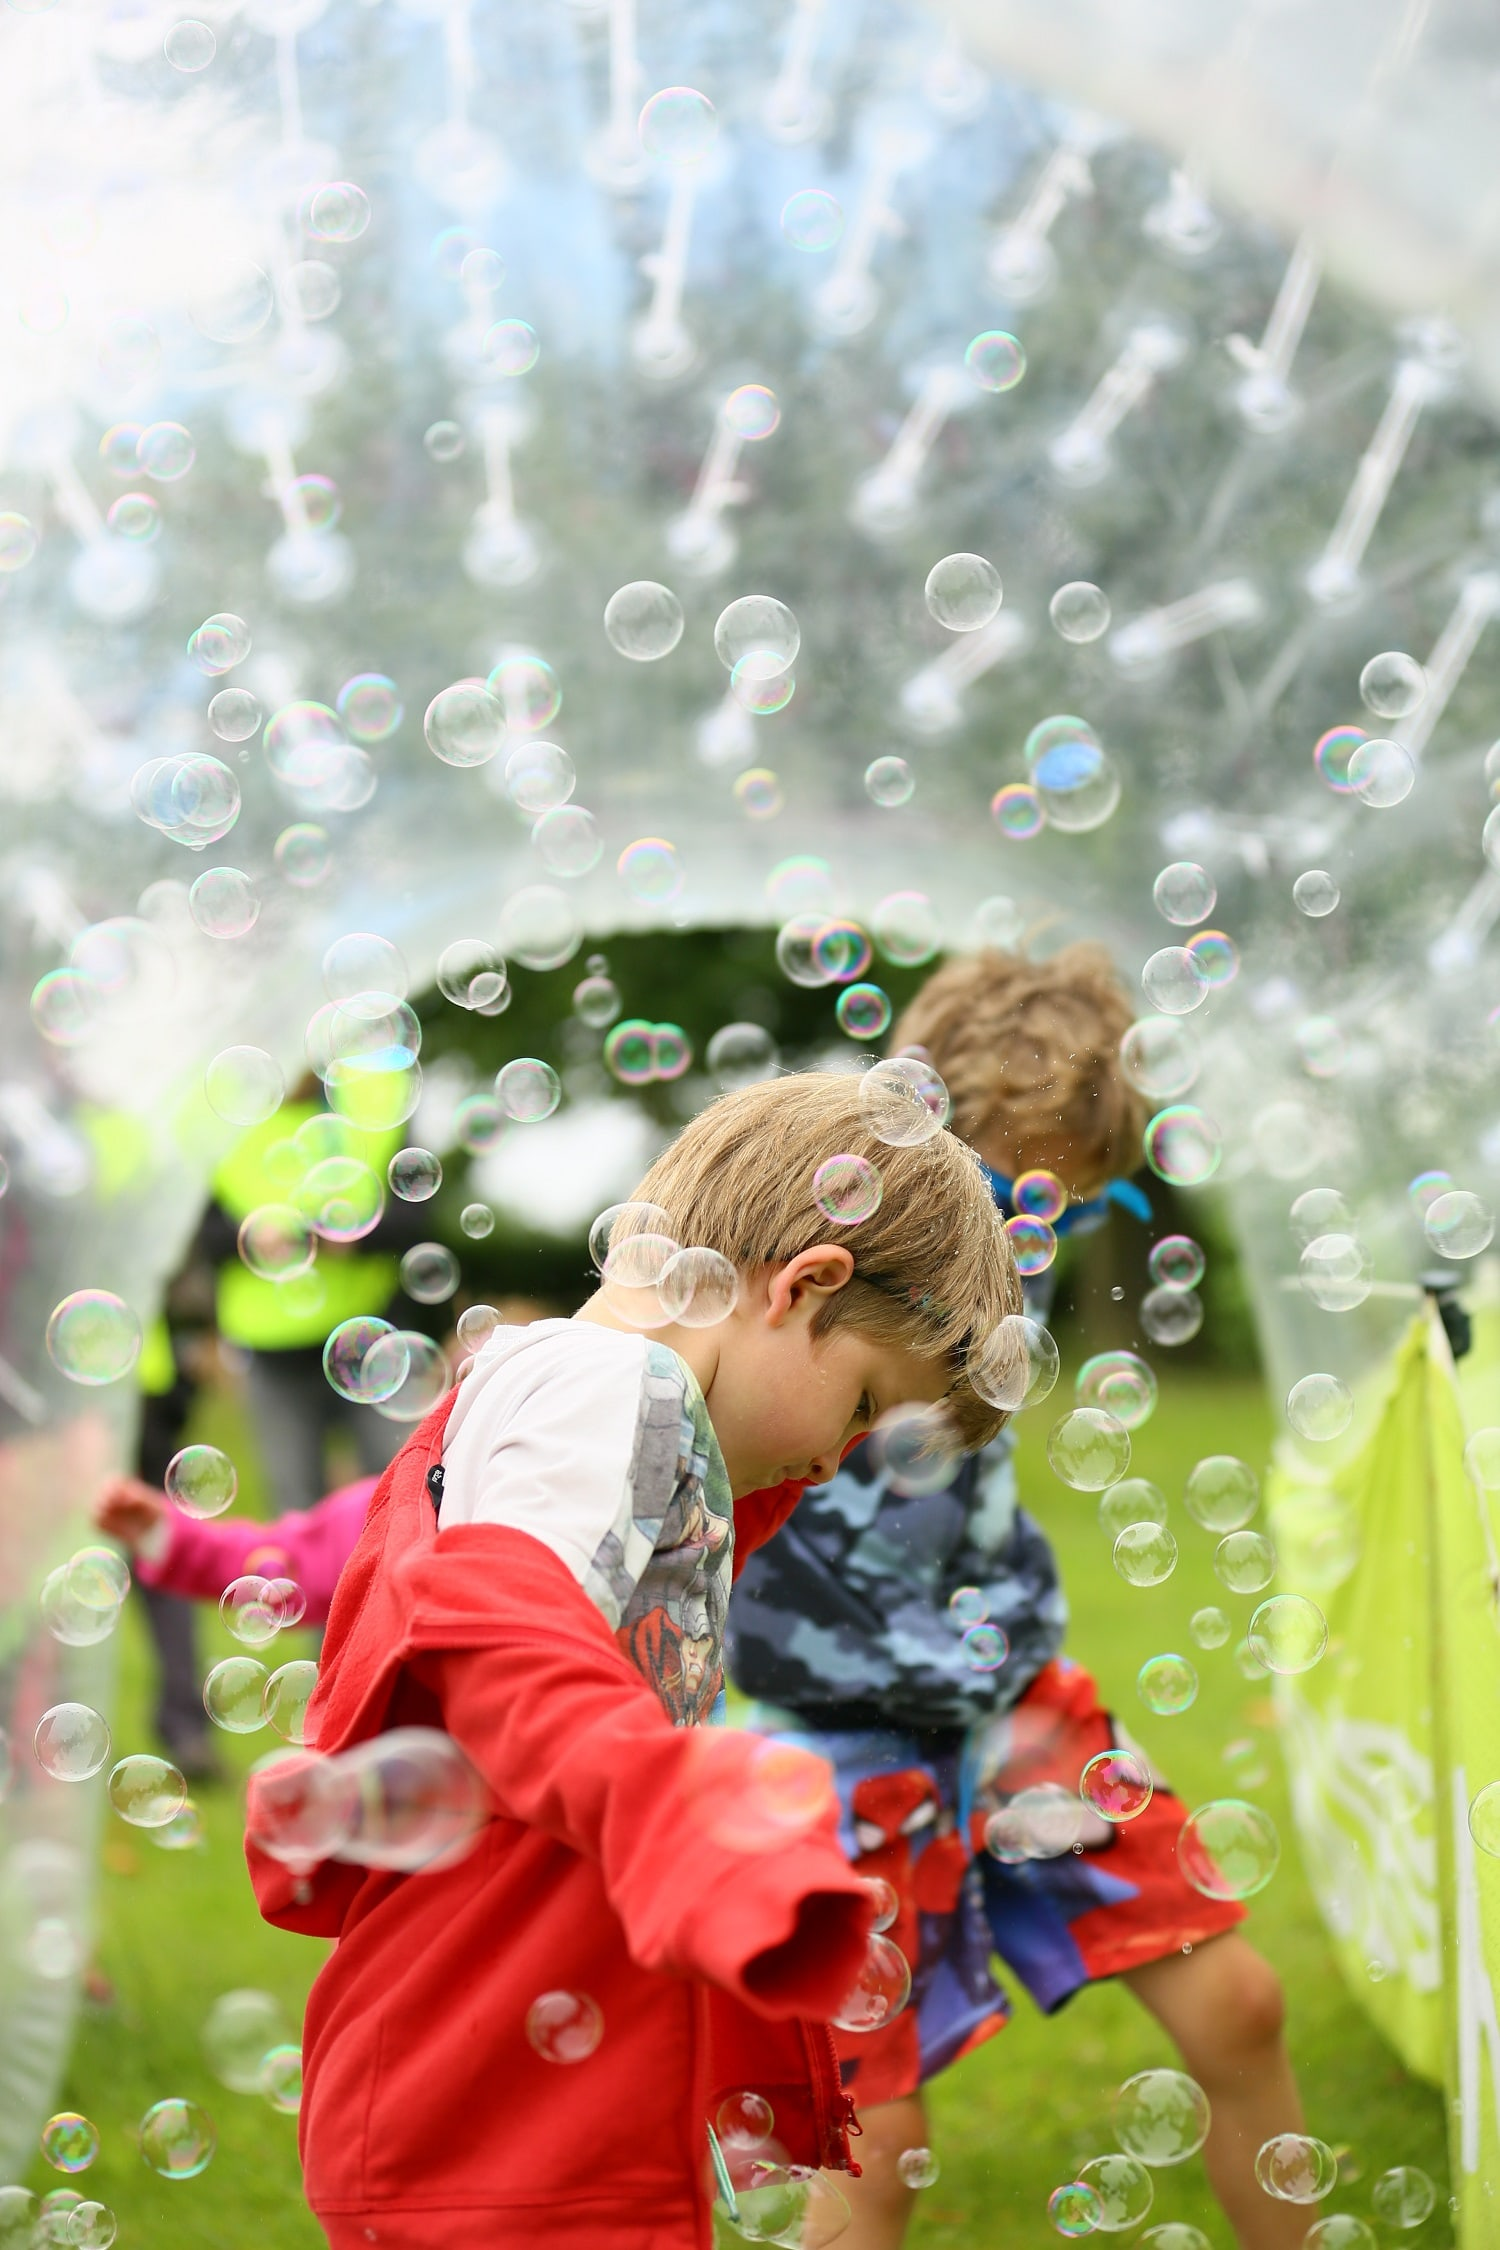 helen-and-douglas-house-bubble-rush-photos-by-les-gordon-8